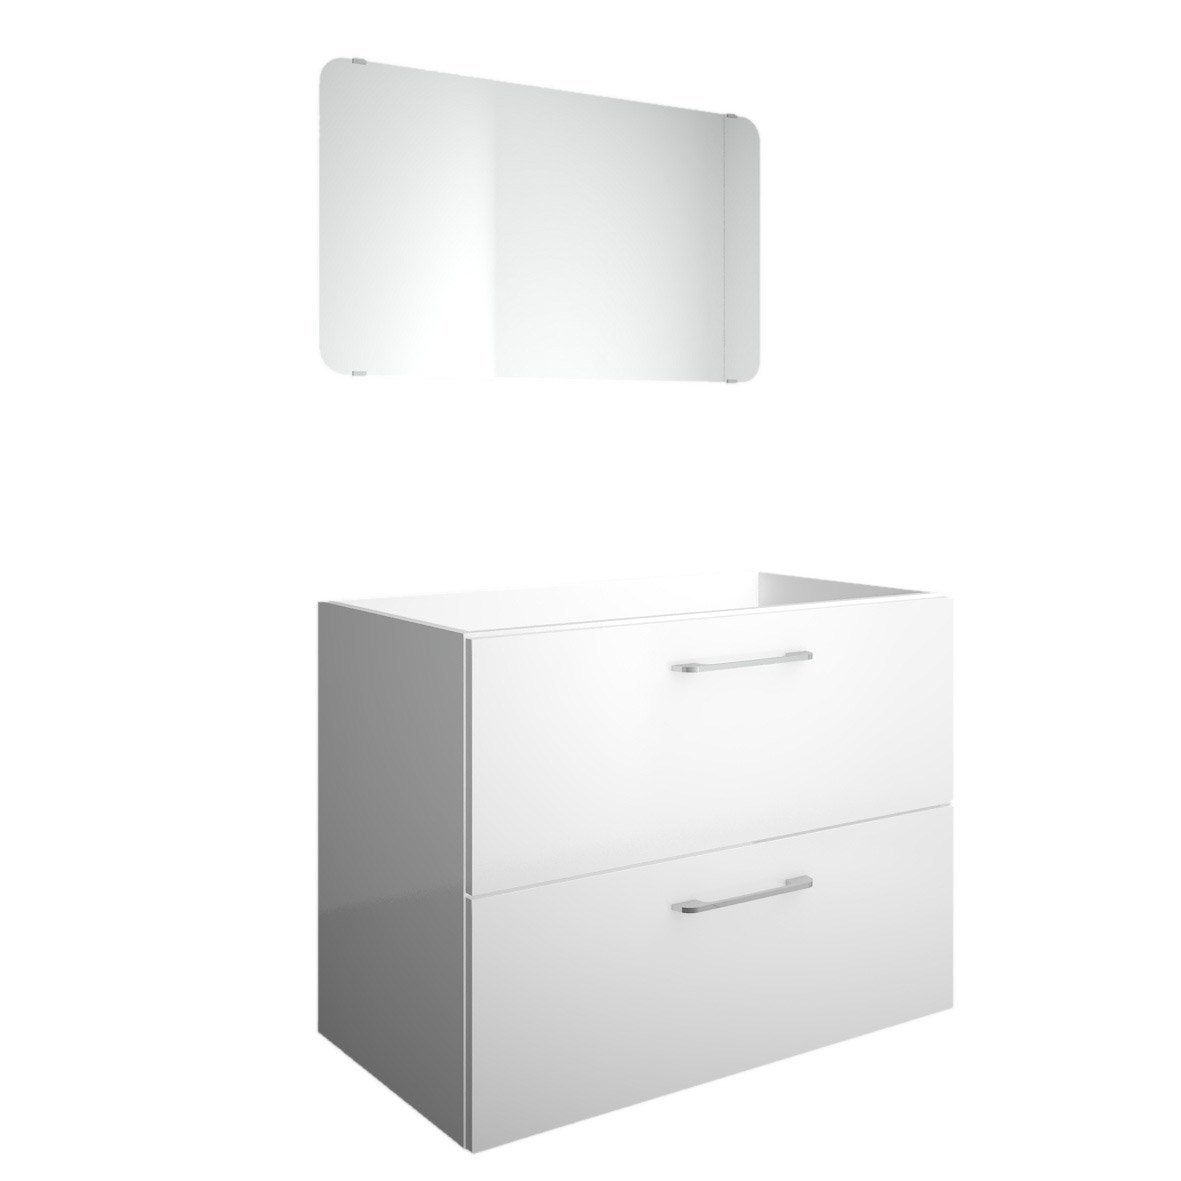 Meuble sous vasque 2 tiroirs 80 cm happy blanc blanc n 0 - Tuto leroy merlin ...